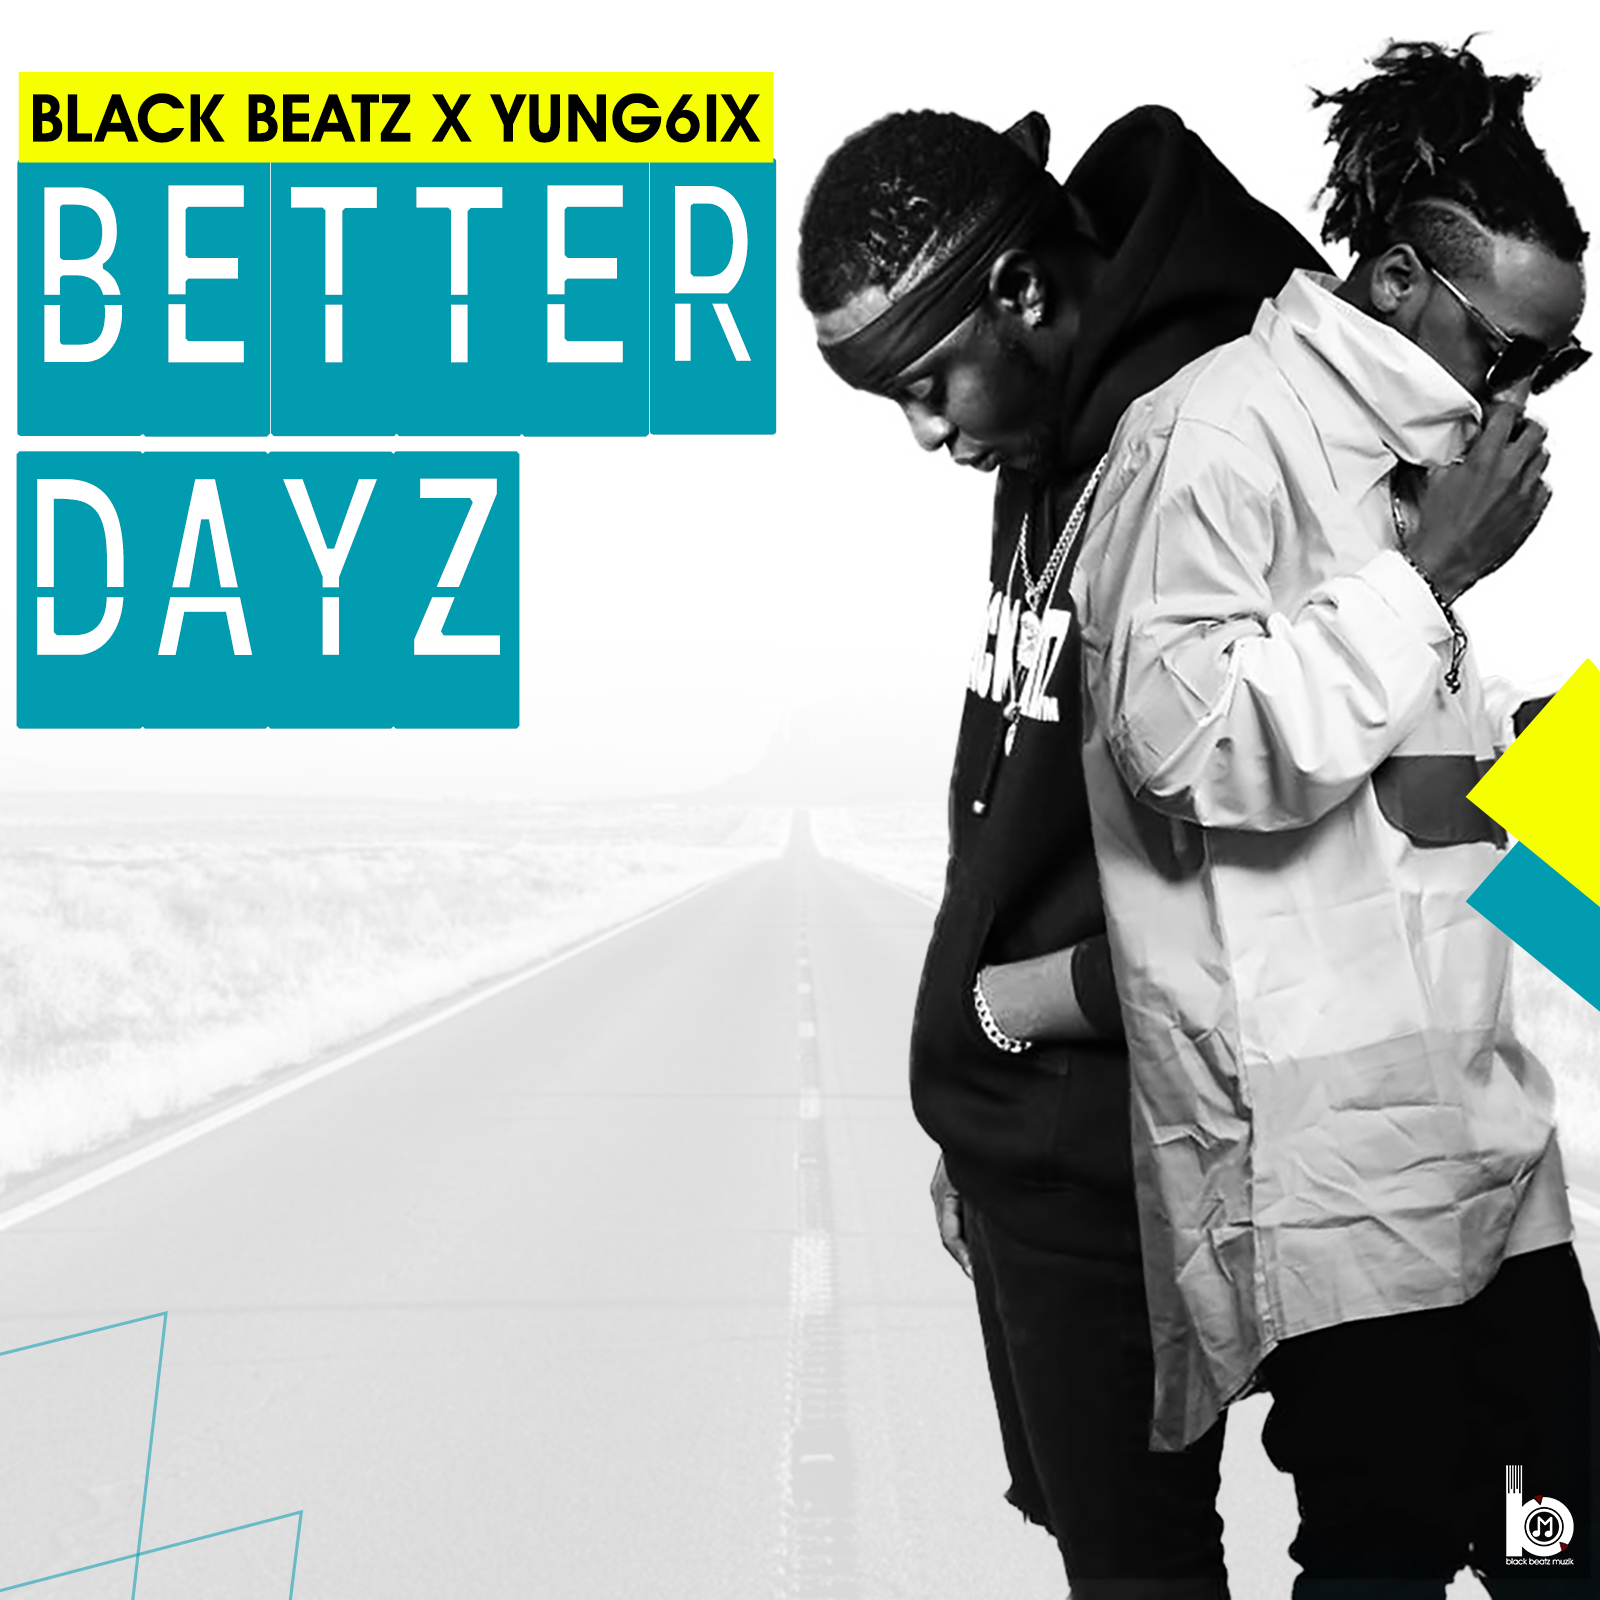 VIDEO: Black Beatz ft. Yung6ix – Better Dayz